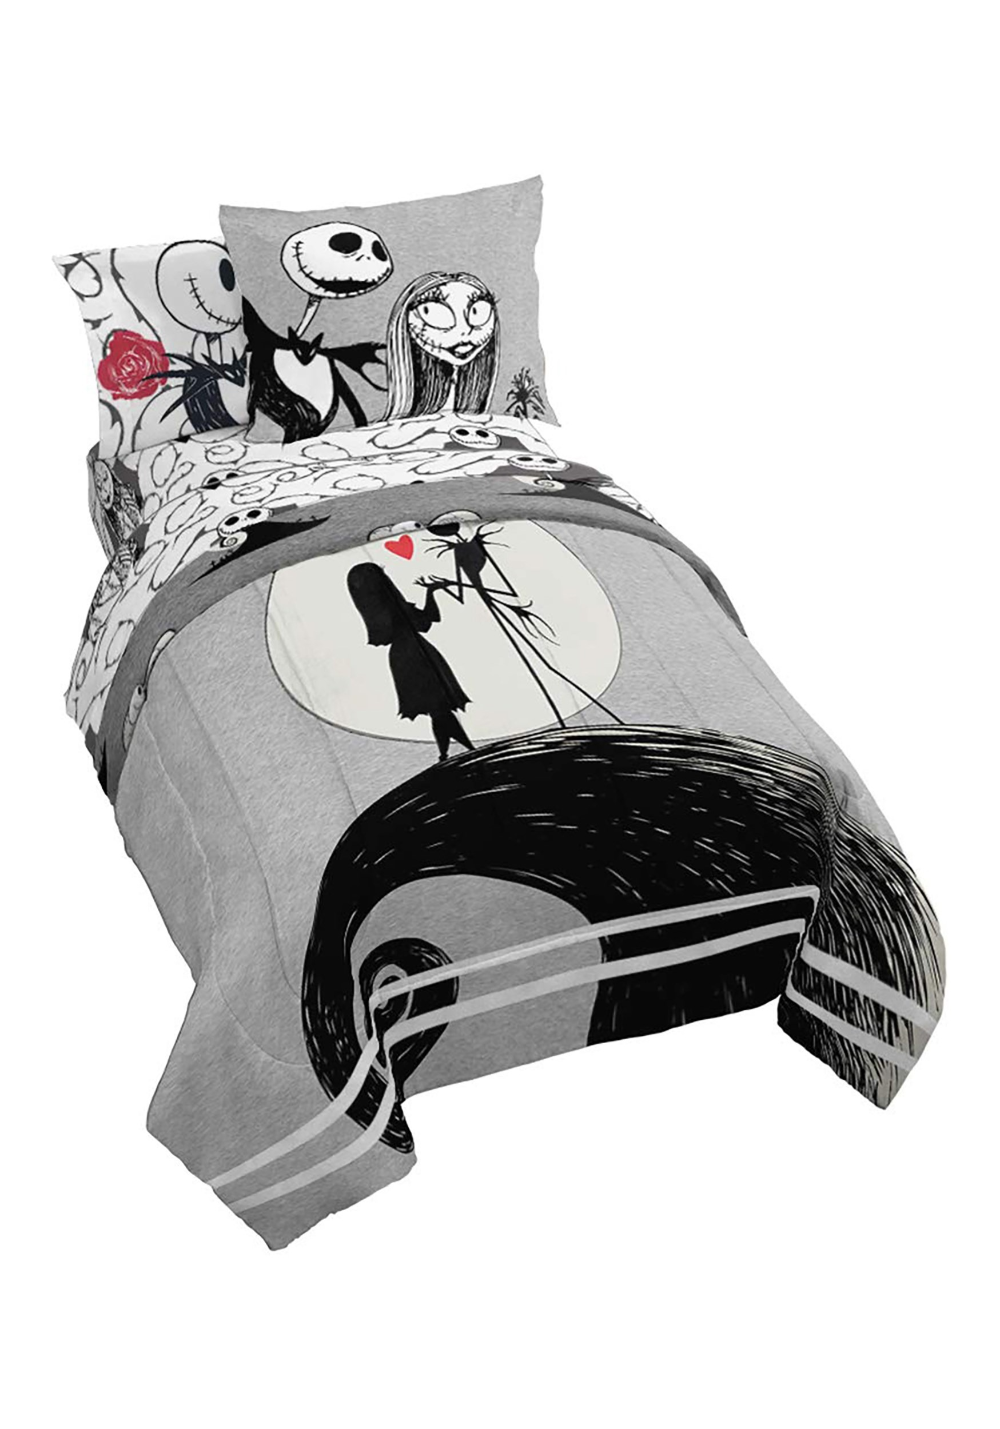 Nightmare Before Christmas Moonlight Full Size Bed In A Bag Bed In A Bag Full Bedding Sets Nightmare Before Christmas